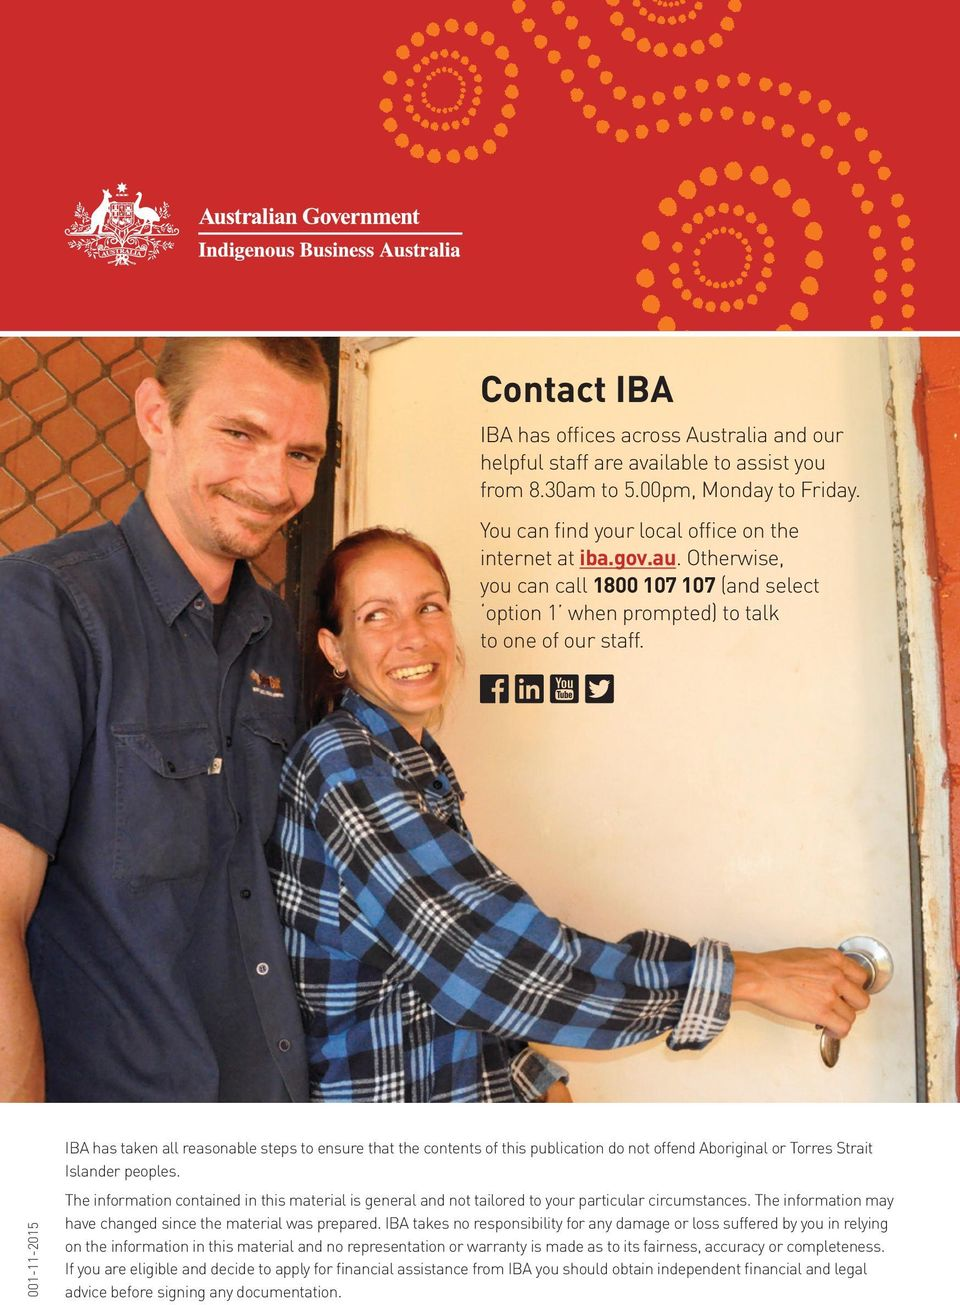 001-11-2015 IBA has taken all reasonable steps to ensure that the contents of this publication do not offend Aboriginal or Torres Strait Islander peoples.